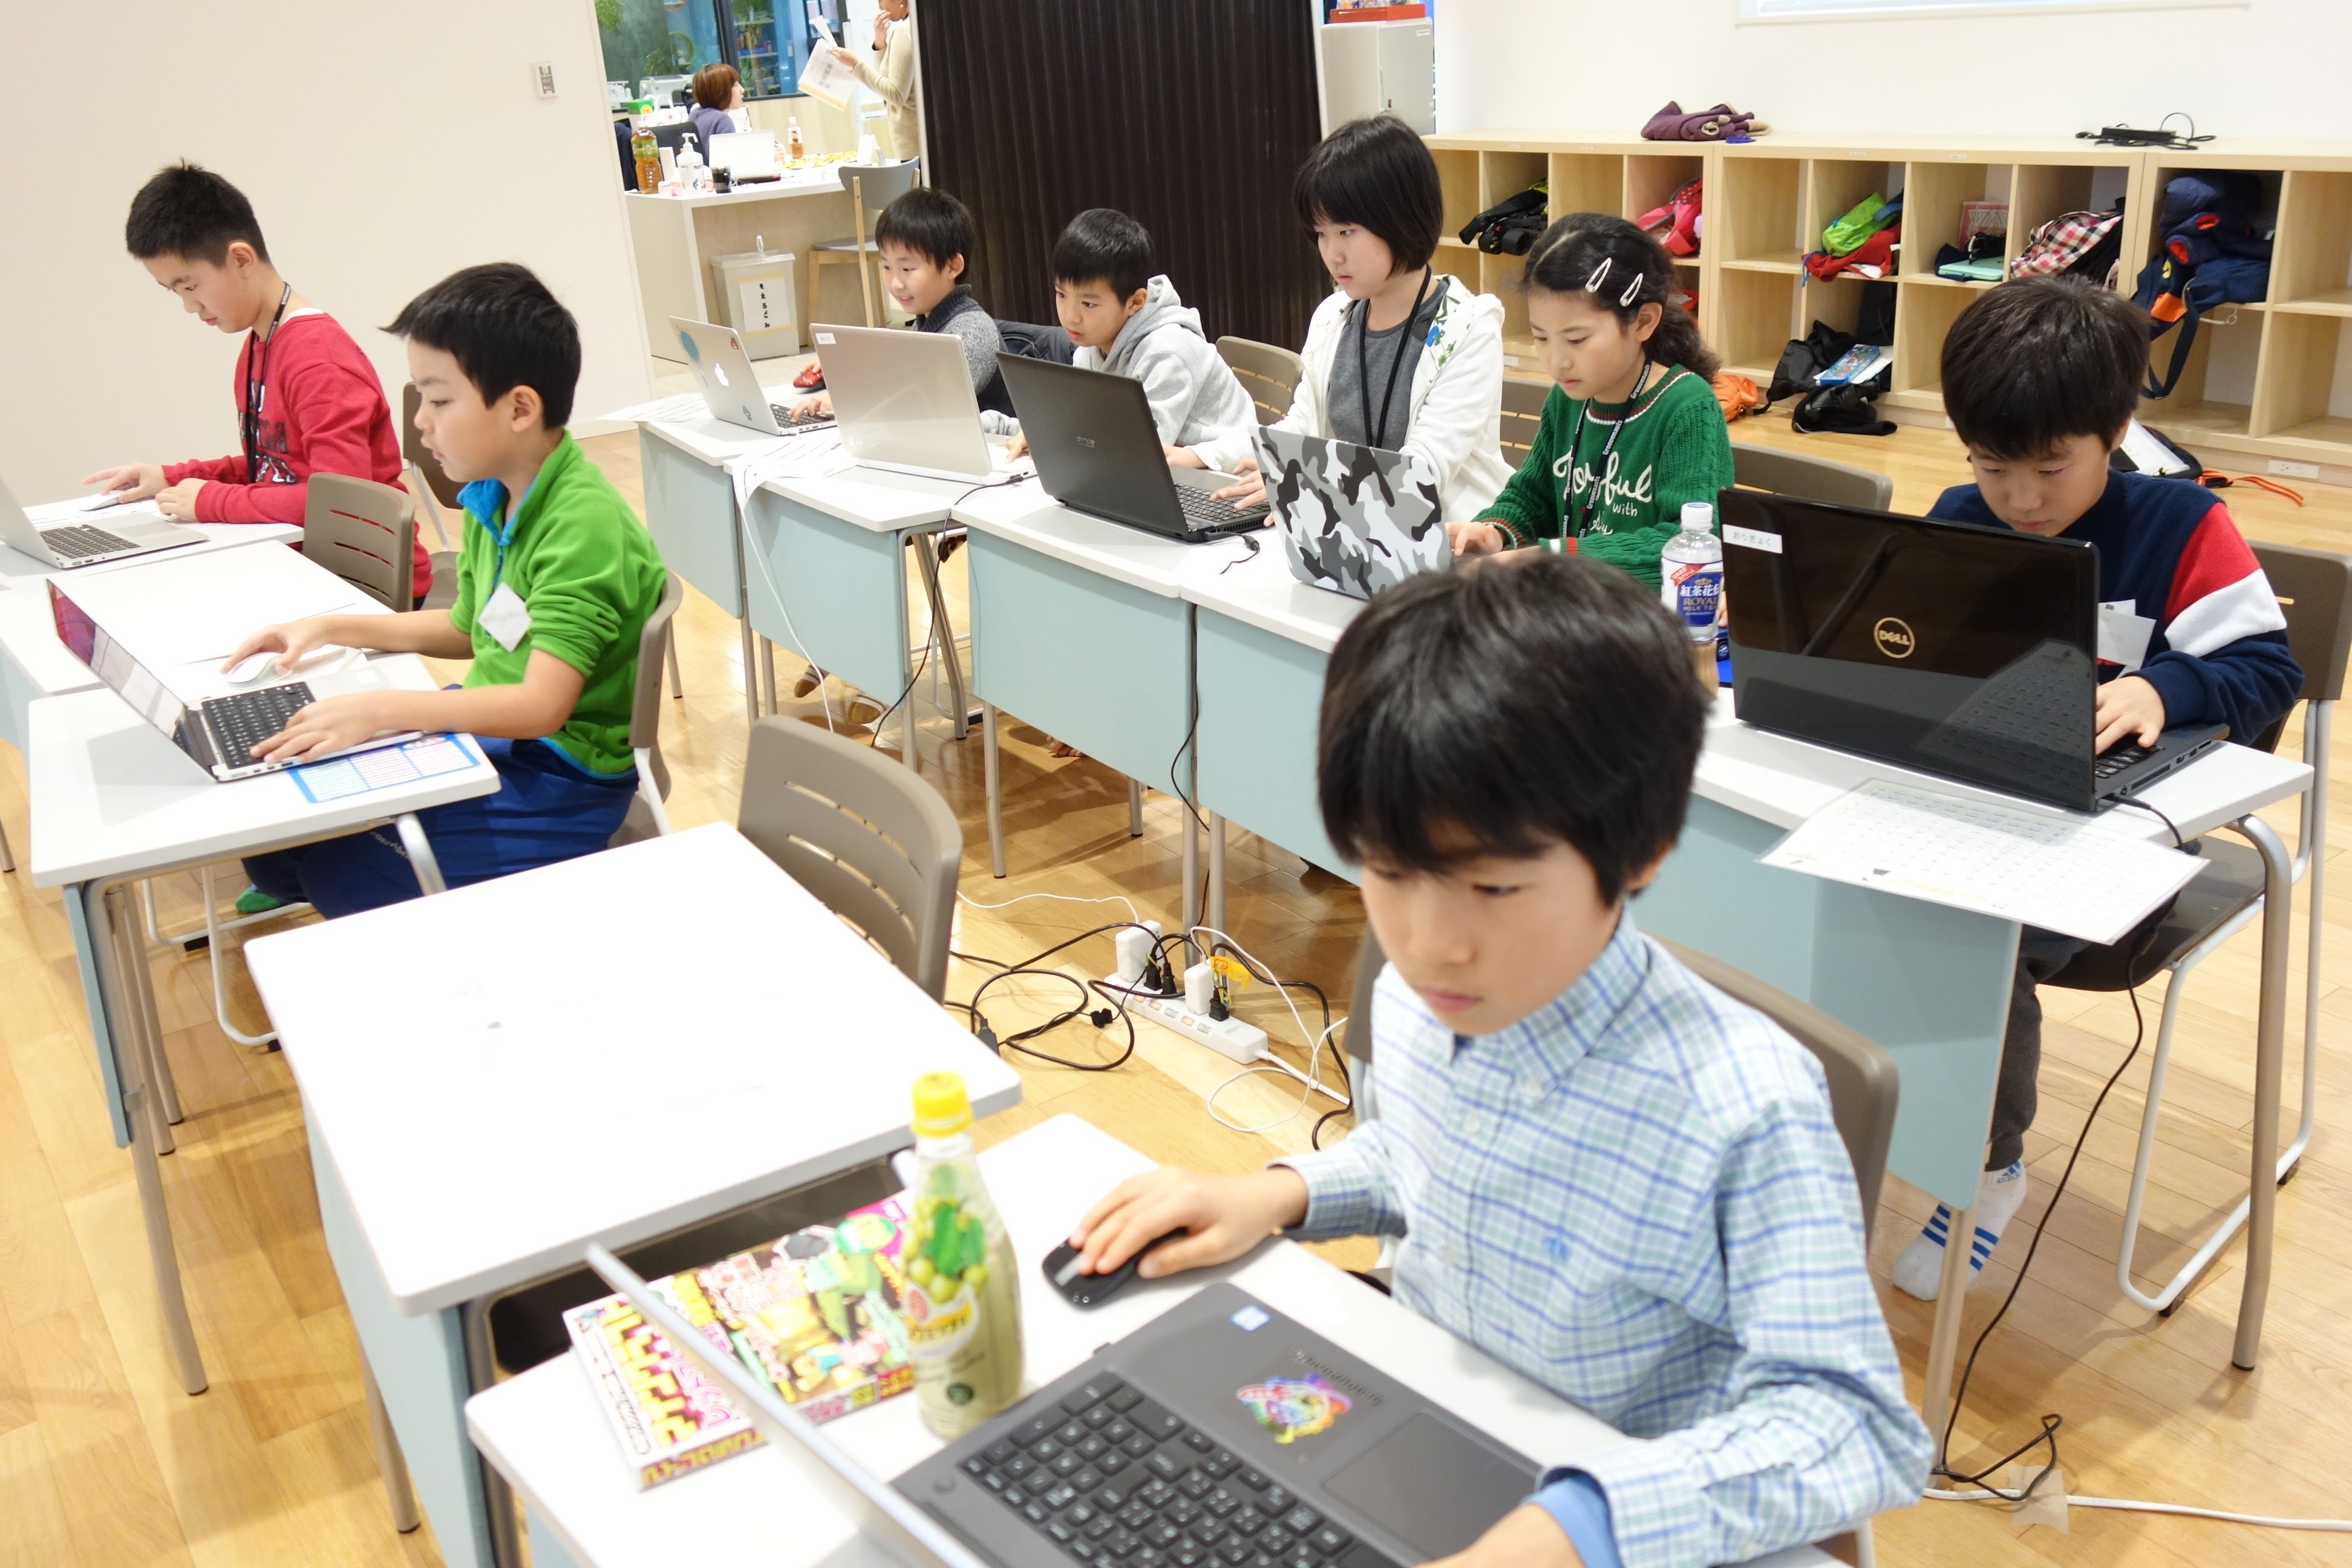 Join Our Trial Lesson on 7/8 (Sat) to Make a Game with Scratch! (4th–6th Graders)